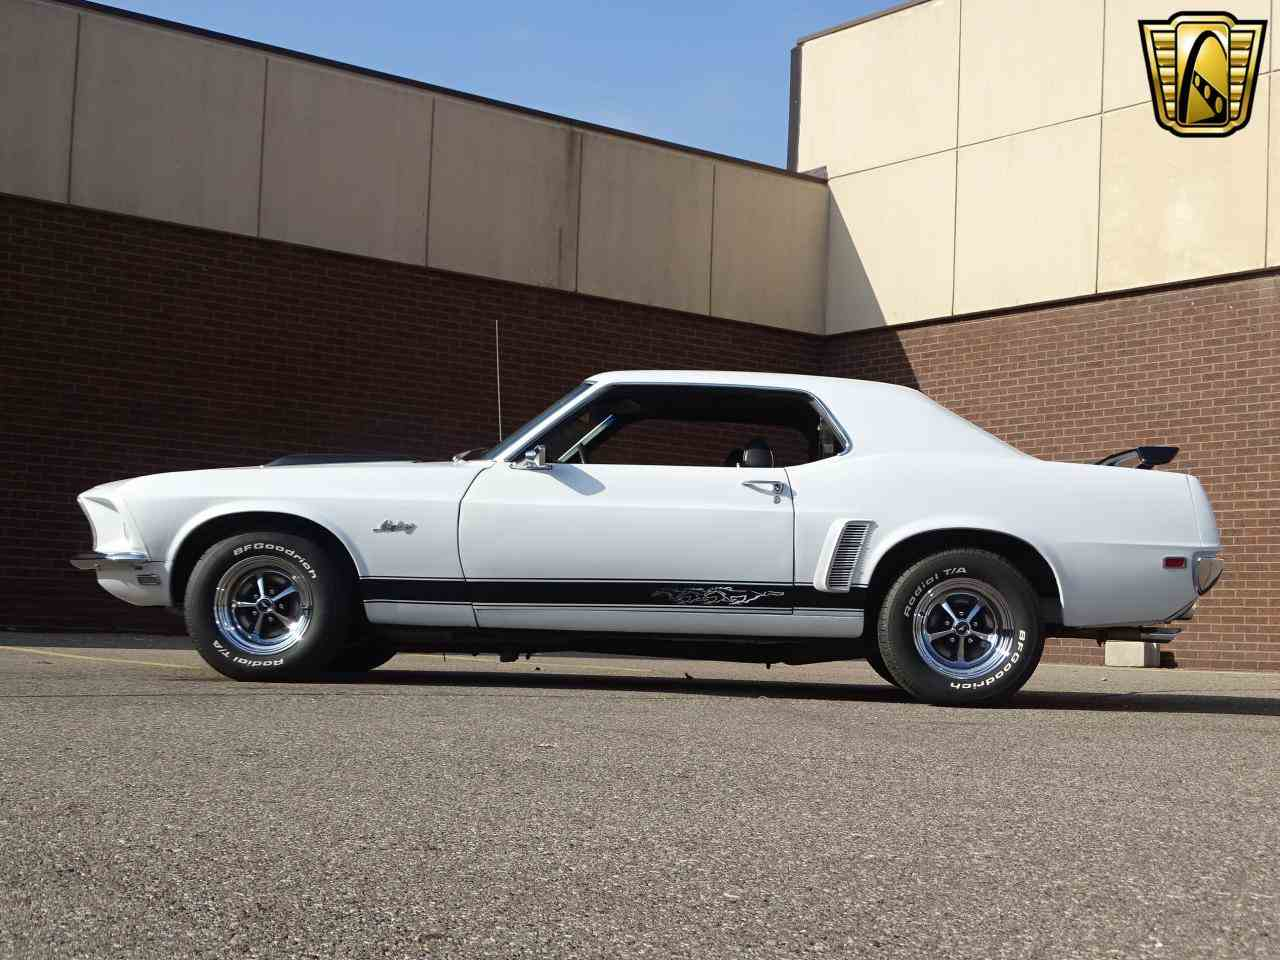 Large Picture of '69 Ford Mustang located in Michigan - $16,995.00 Offered by Gateway Classic Cars - Detroit - MCZ4